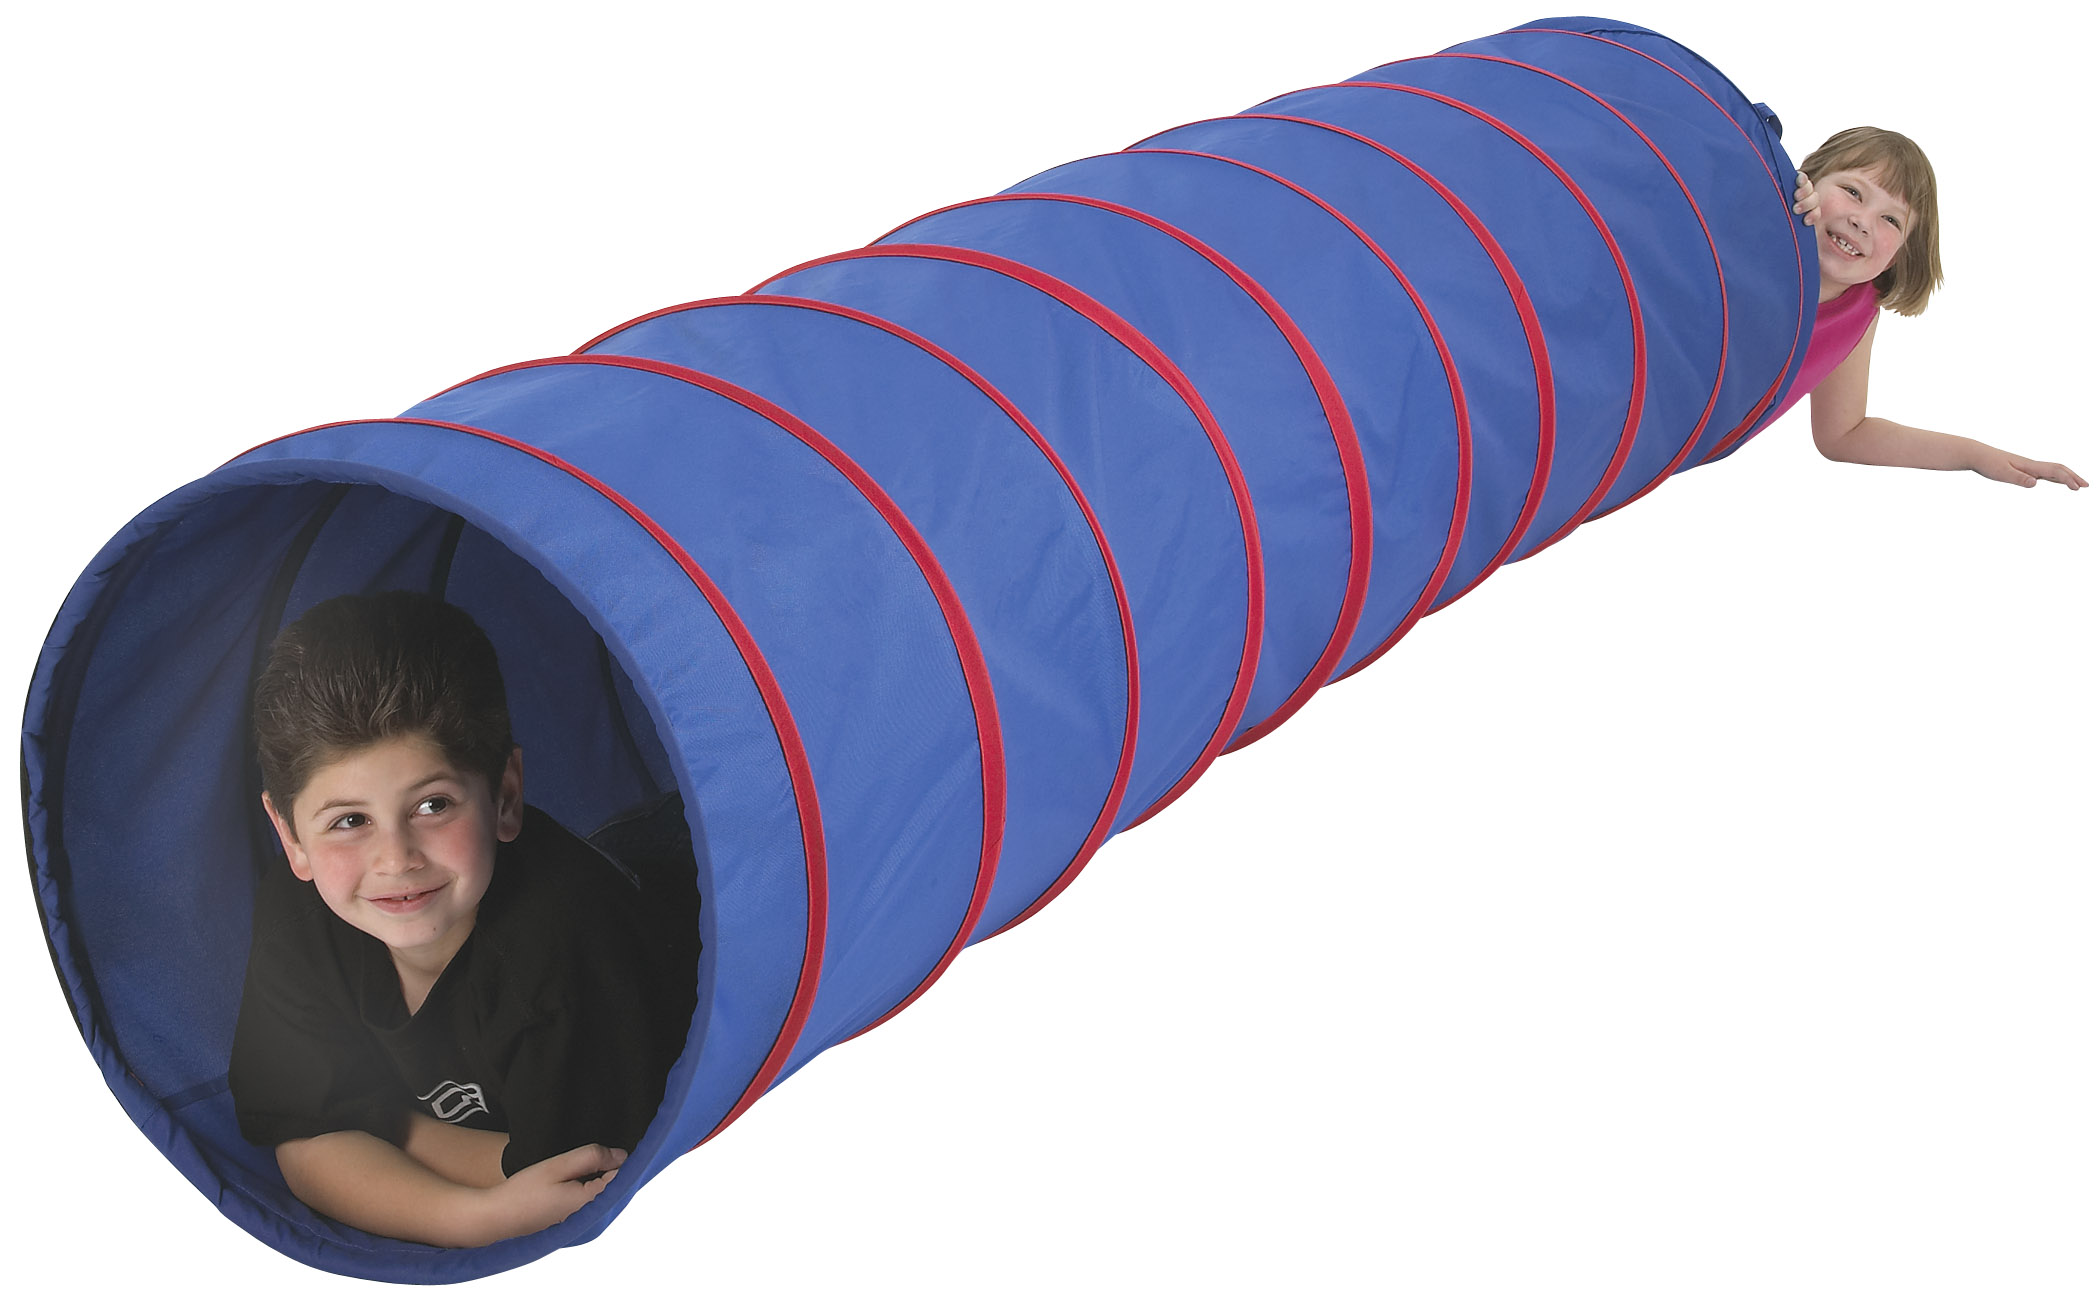 Pacific Play Tents Institutional 9 foot Play Tunnel (blue w/ blue)